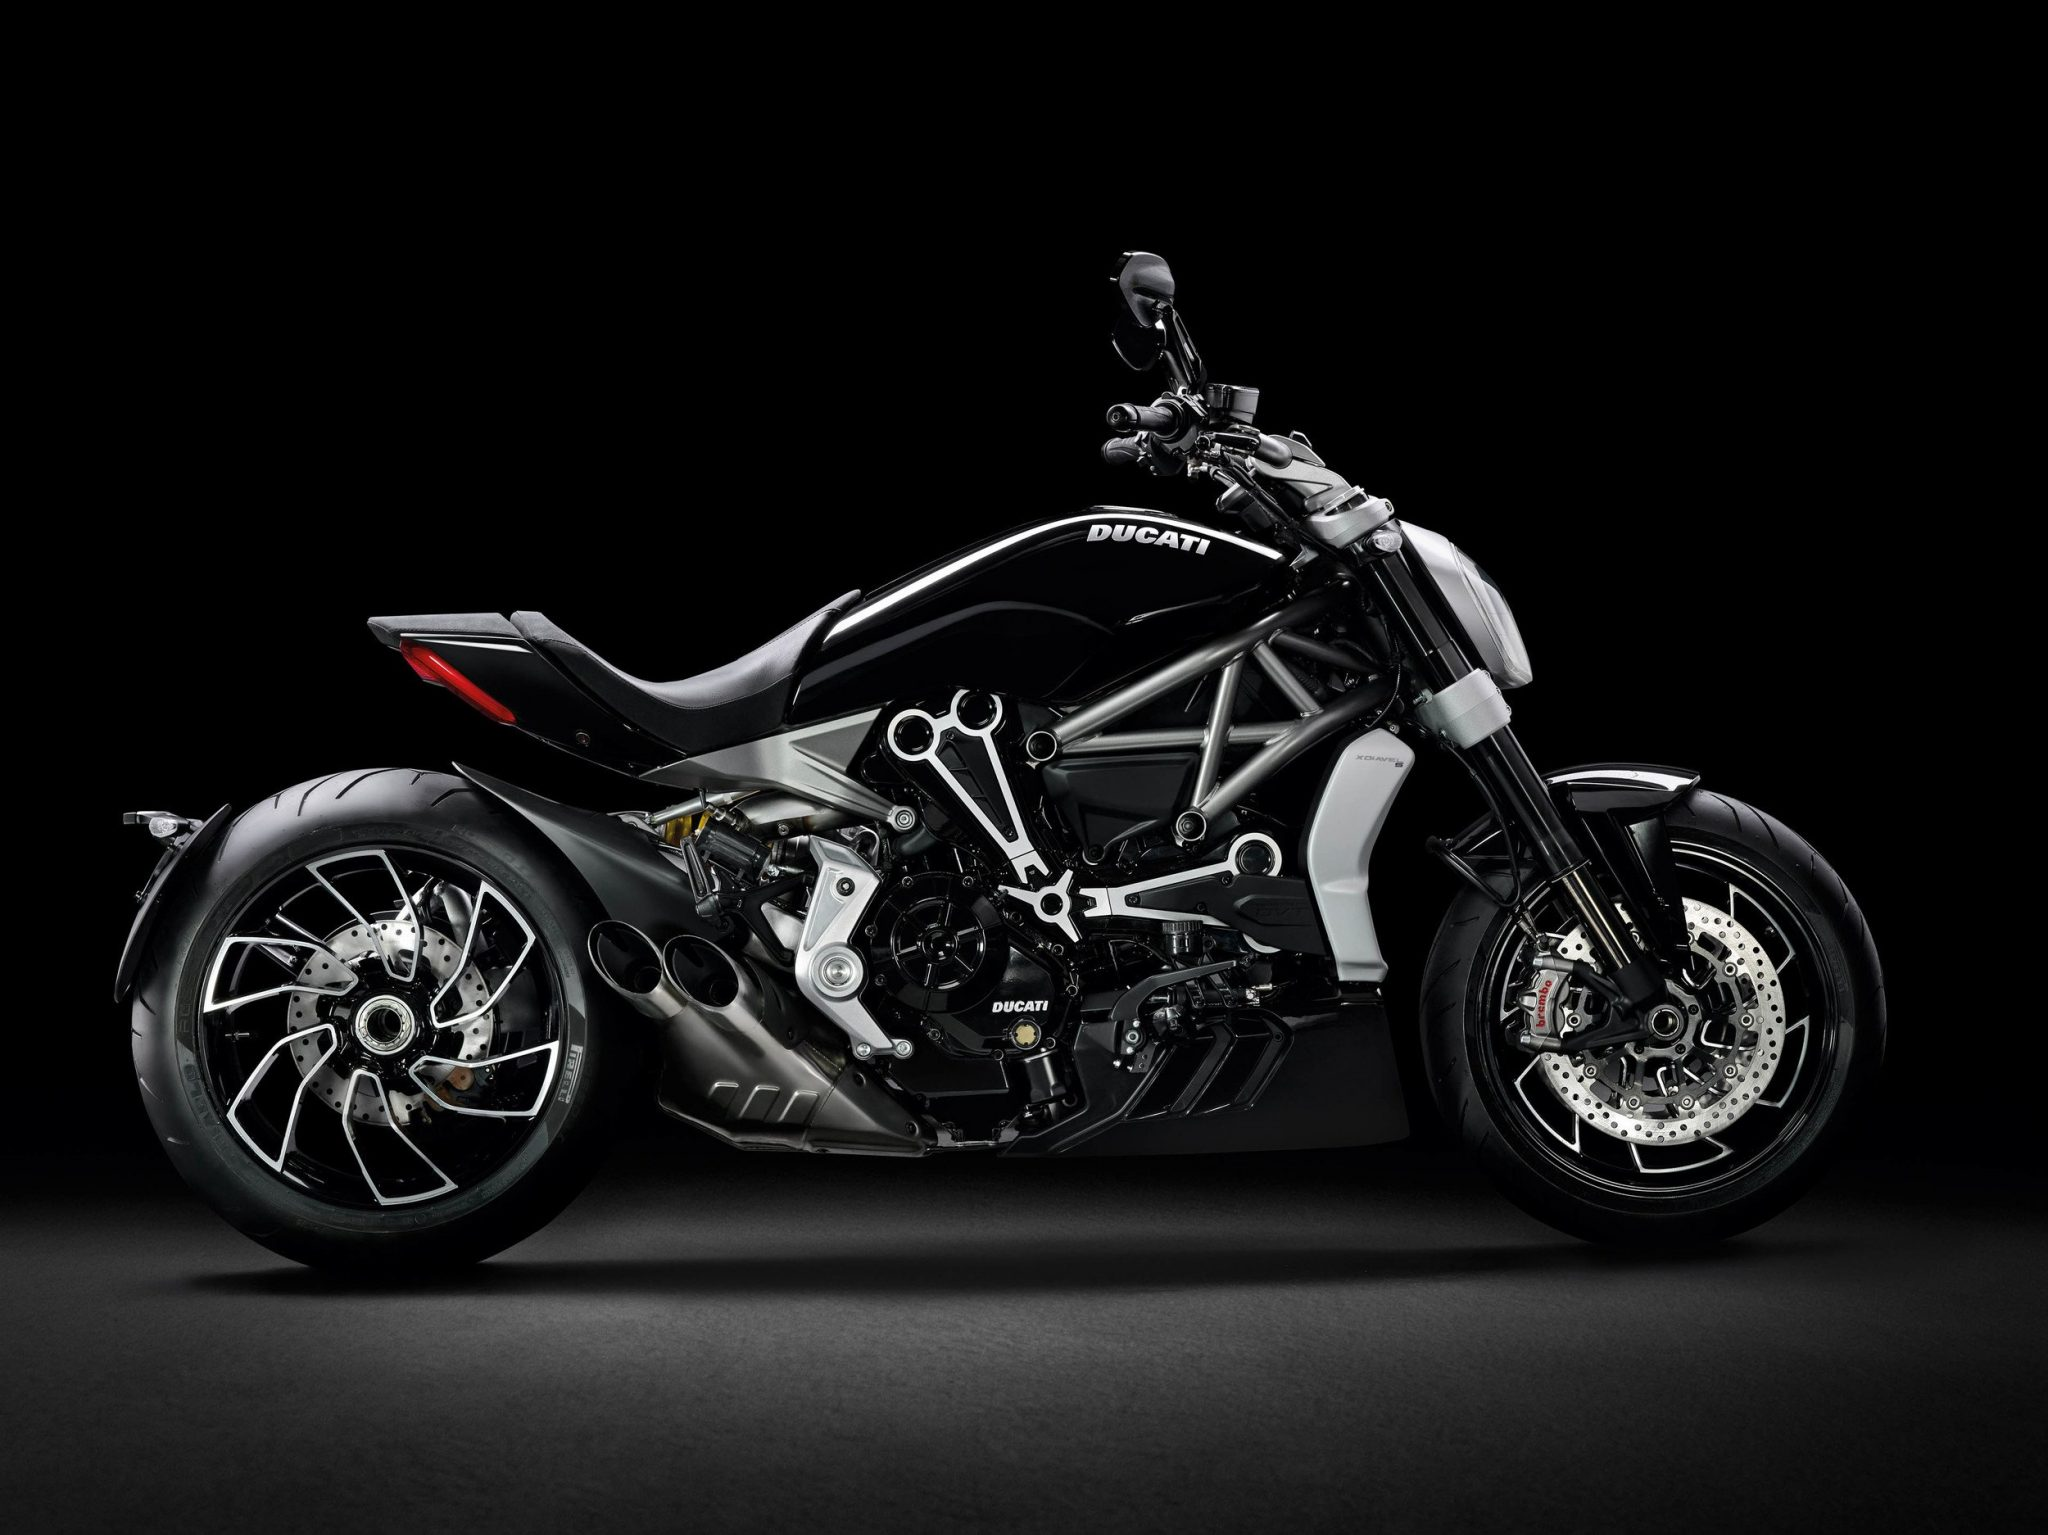 Ducati-Backgrounds-wallpaer-Full-HD-06